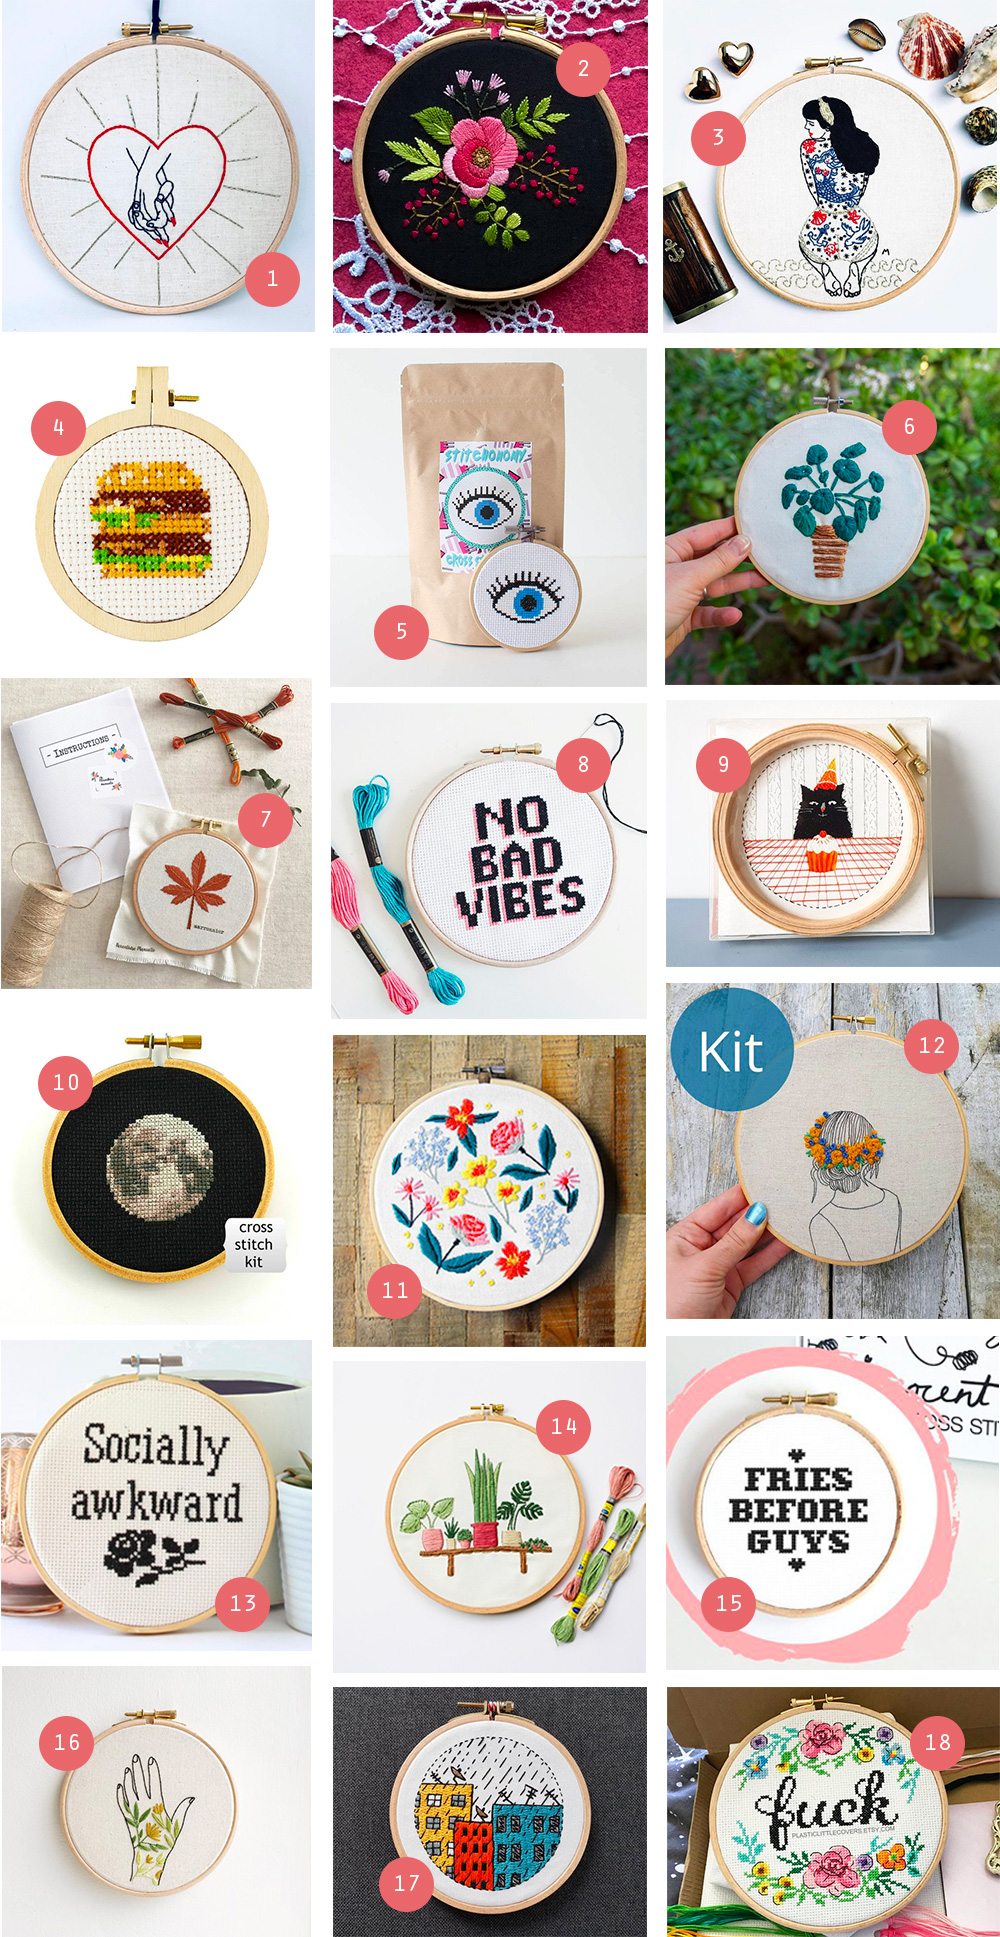 selection-kits-broderie-pointdecroix-moderne